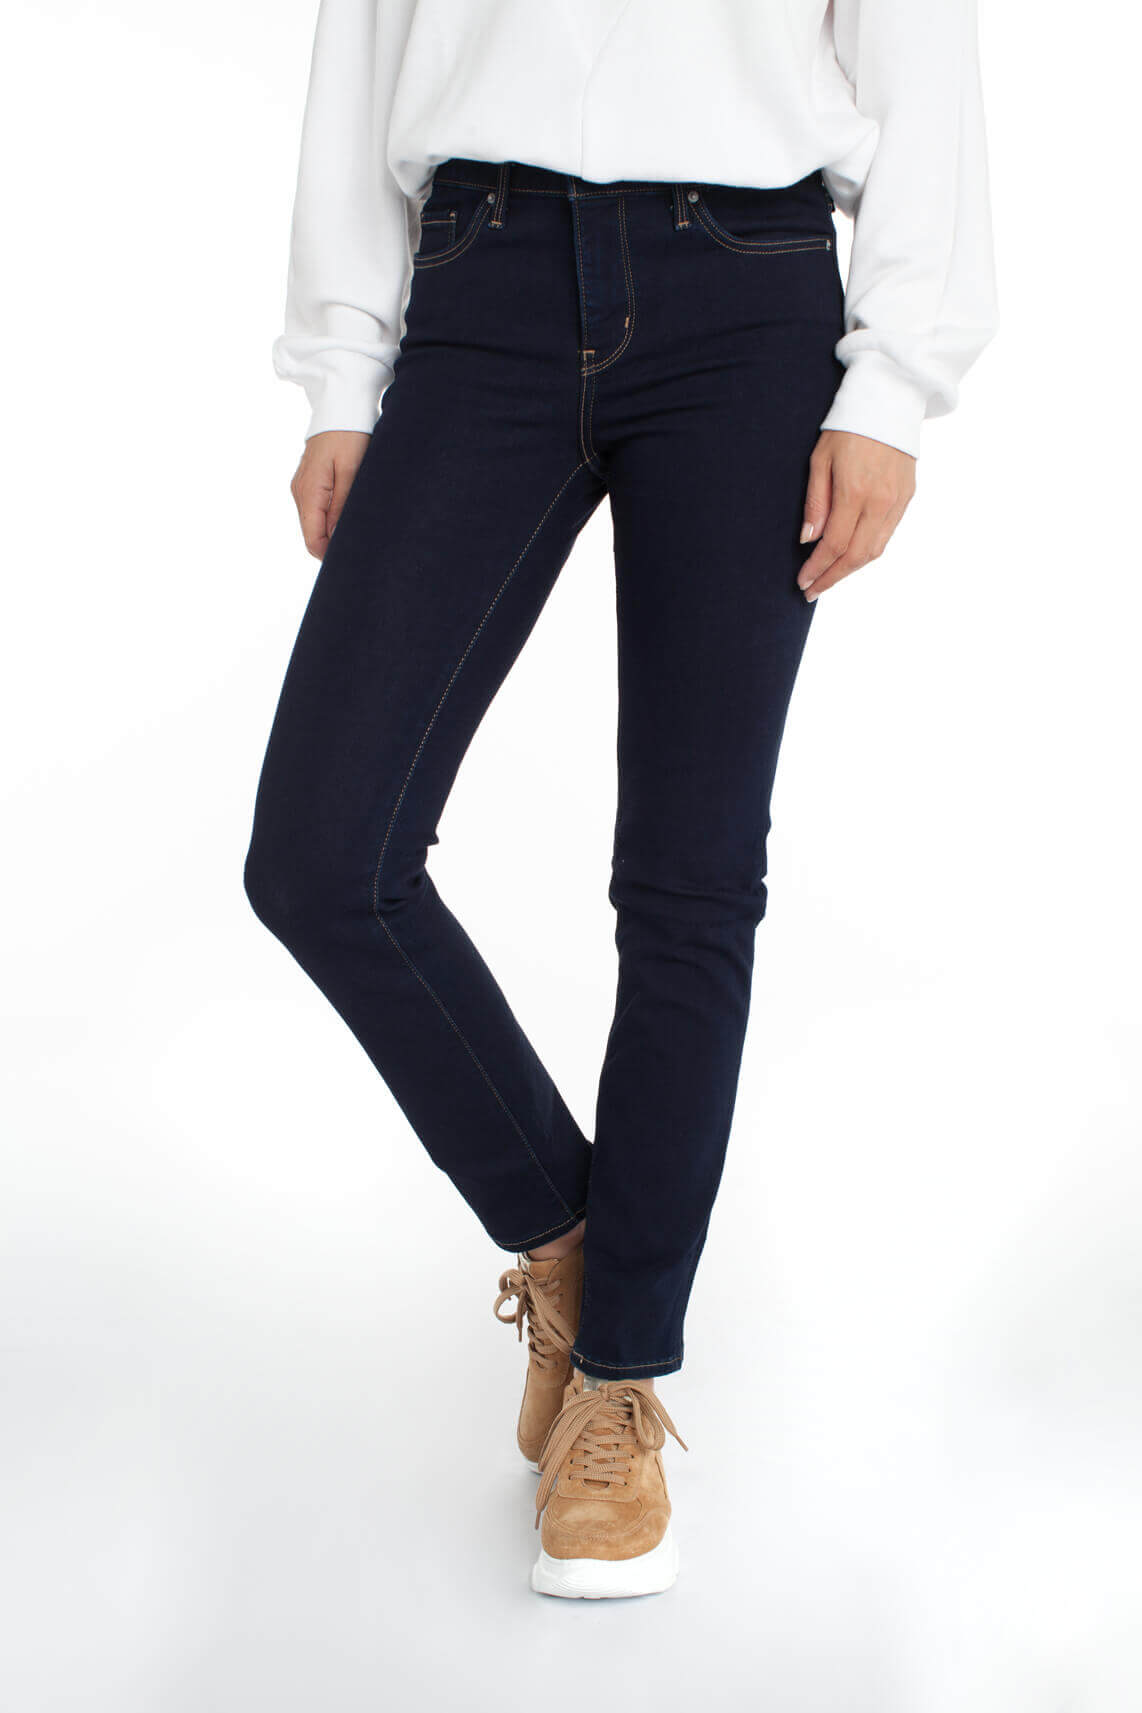 Levi s Dames 312 shaping slim jeans Blauw